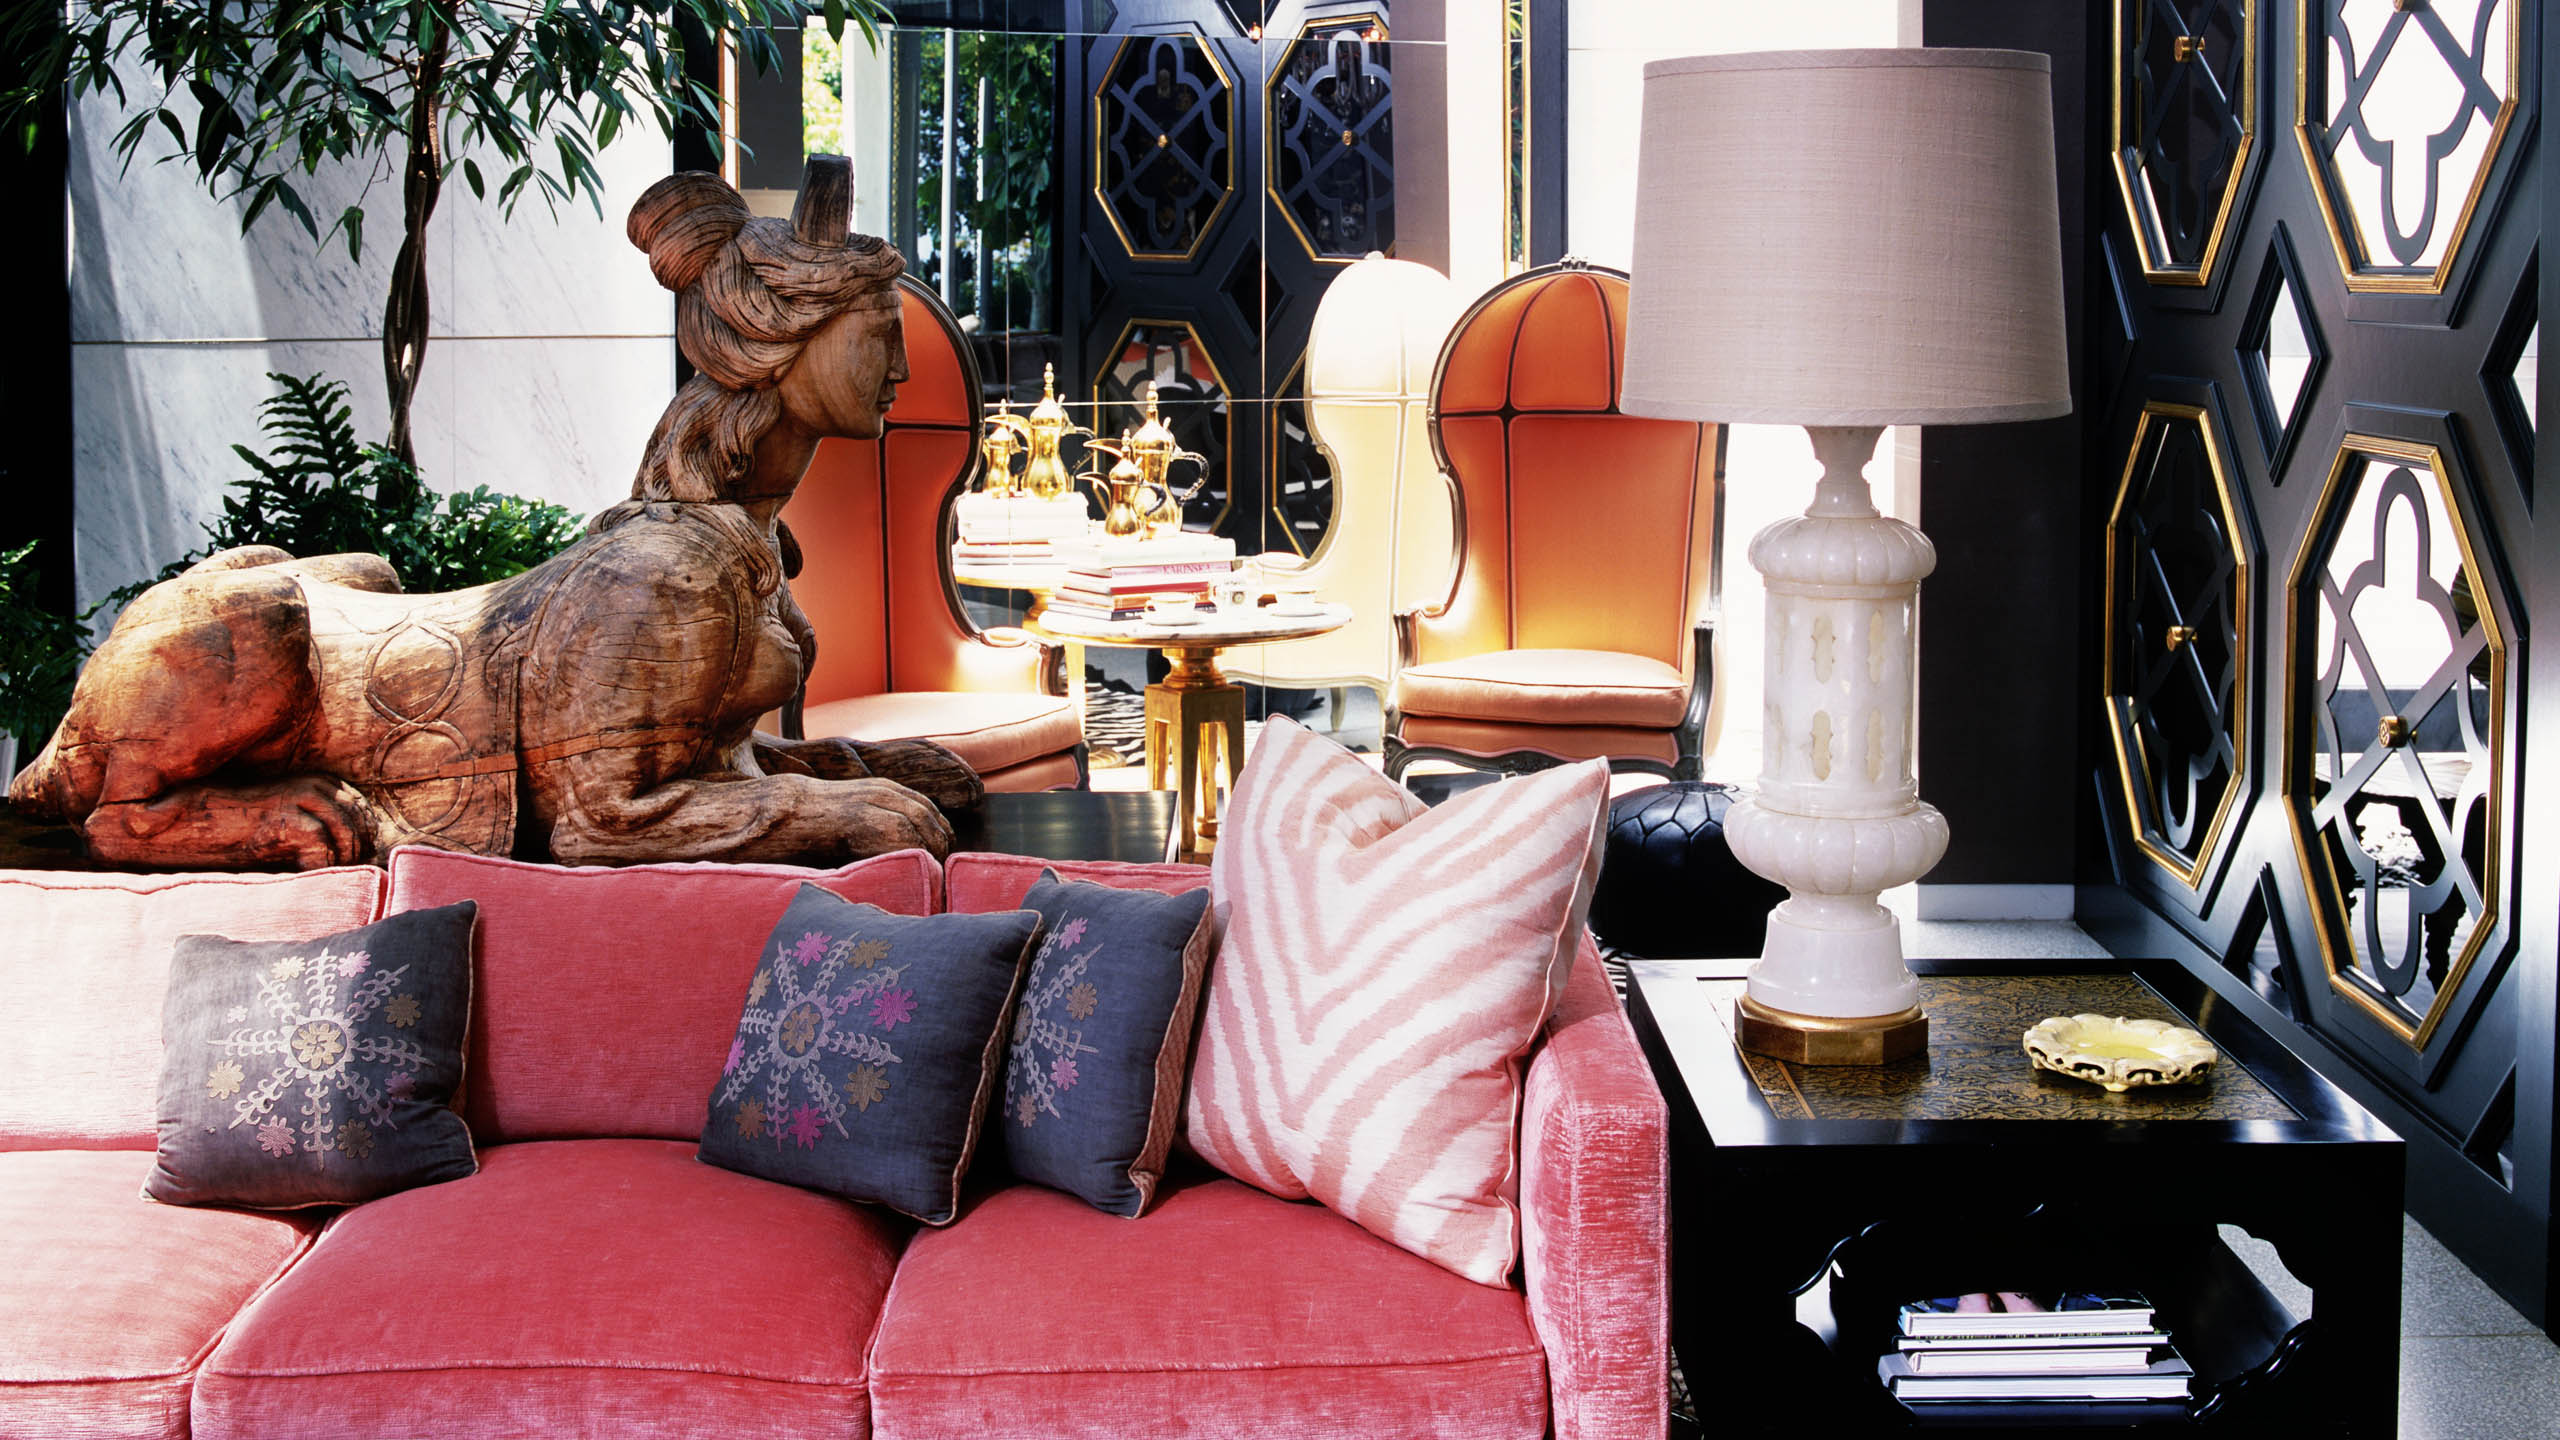 Top Interior Designers: Kelly Wearstler - pink and gold decor - black interior design - lamp - warm colors - statue